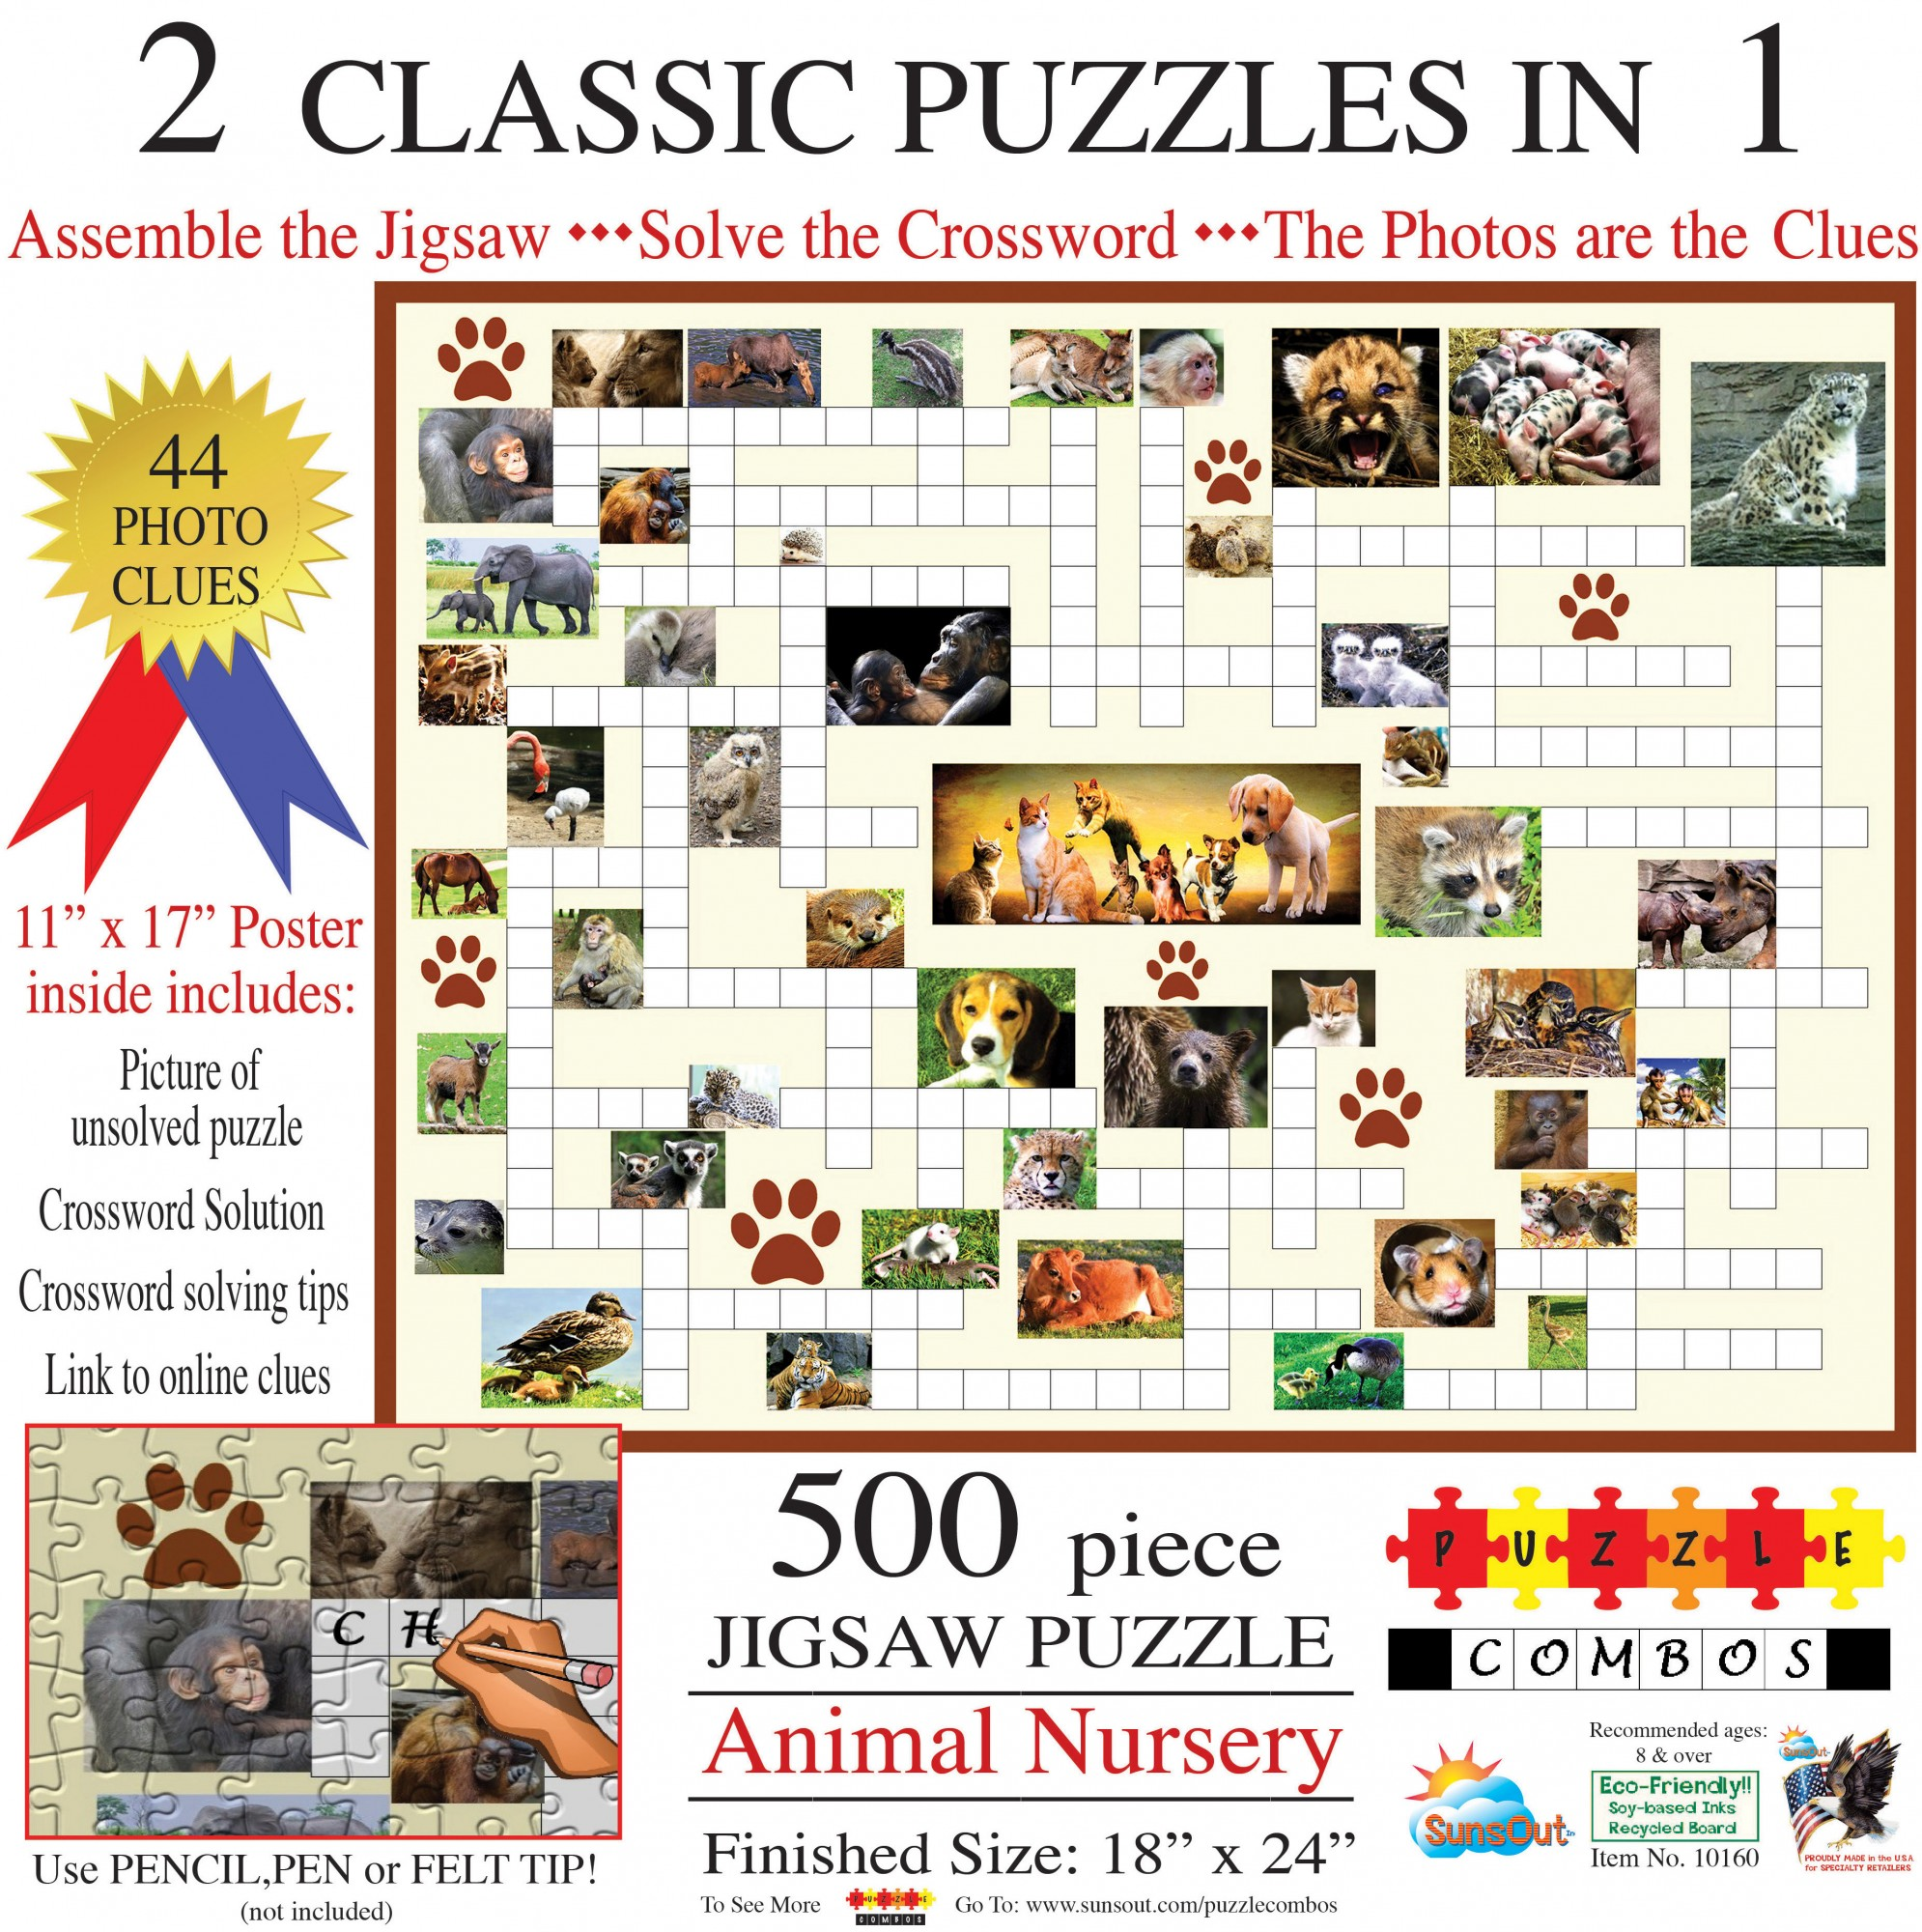 SunsOut Puzzle - #10160 Animal Nursery - 500pc  Puzzle Combo, Crossword Jigsaw Puzzle